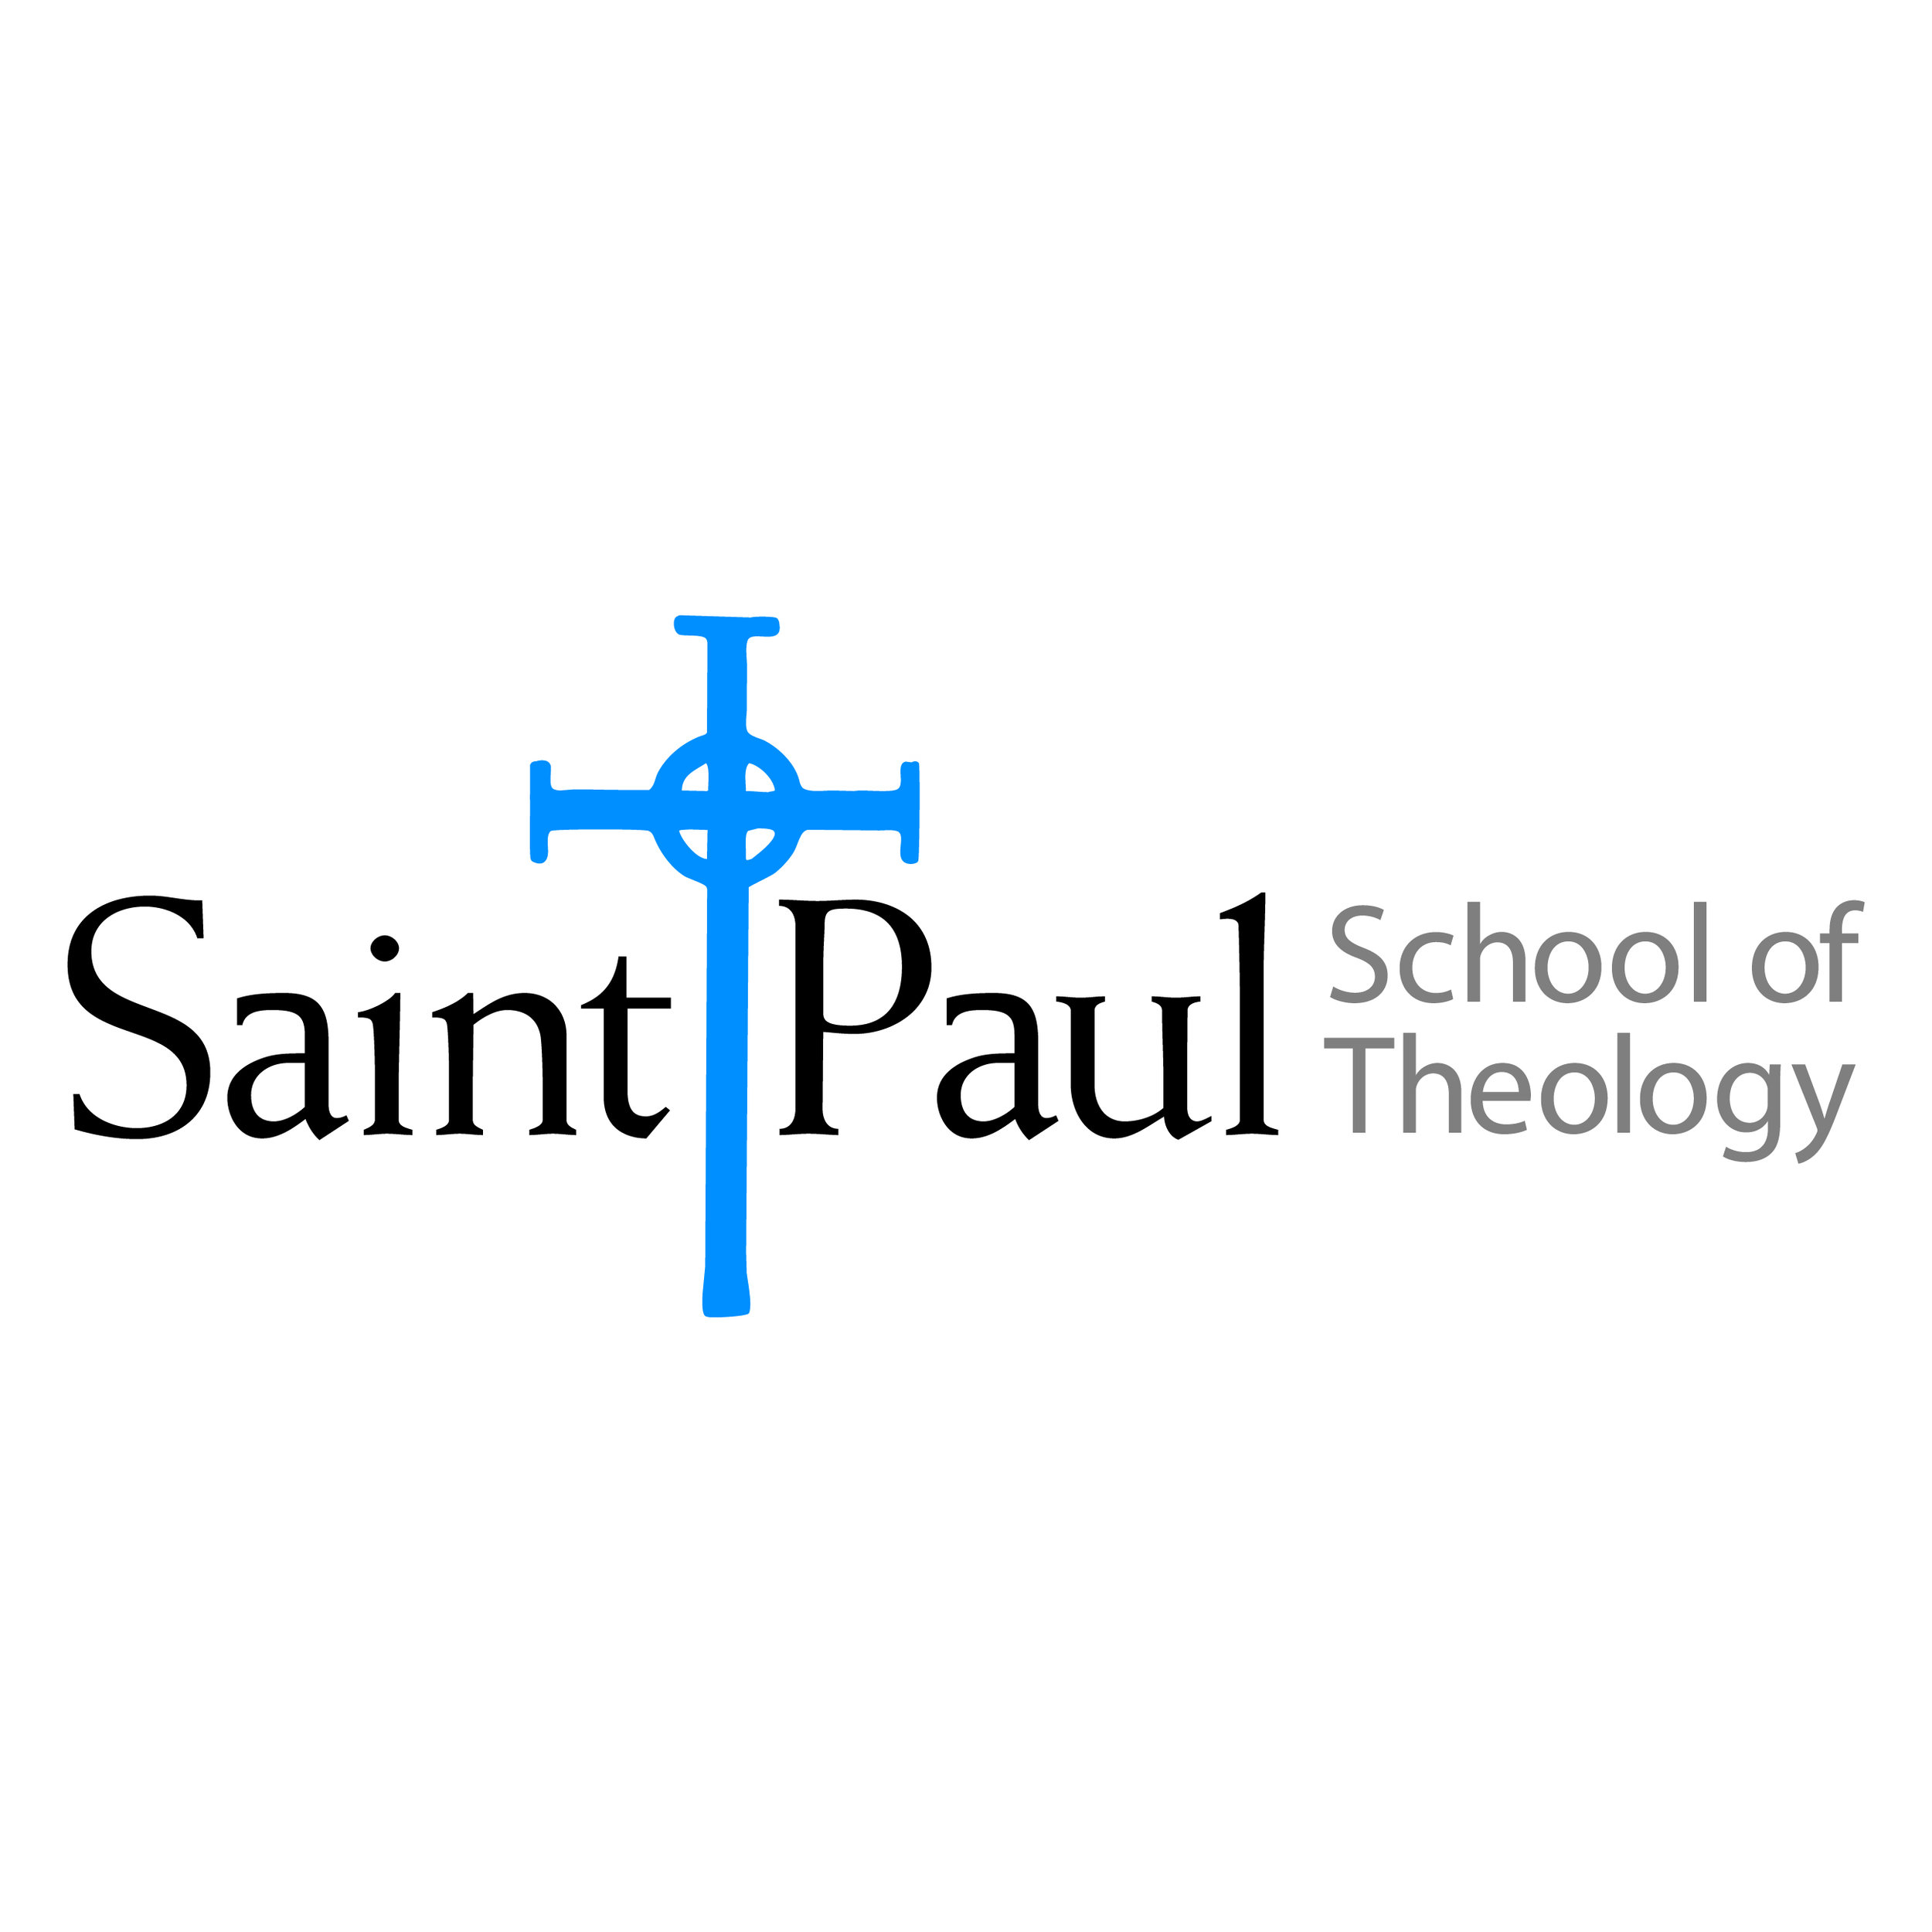 St. Paul School of Theology